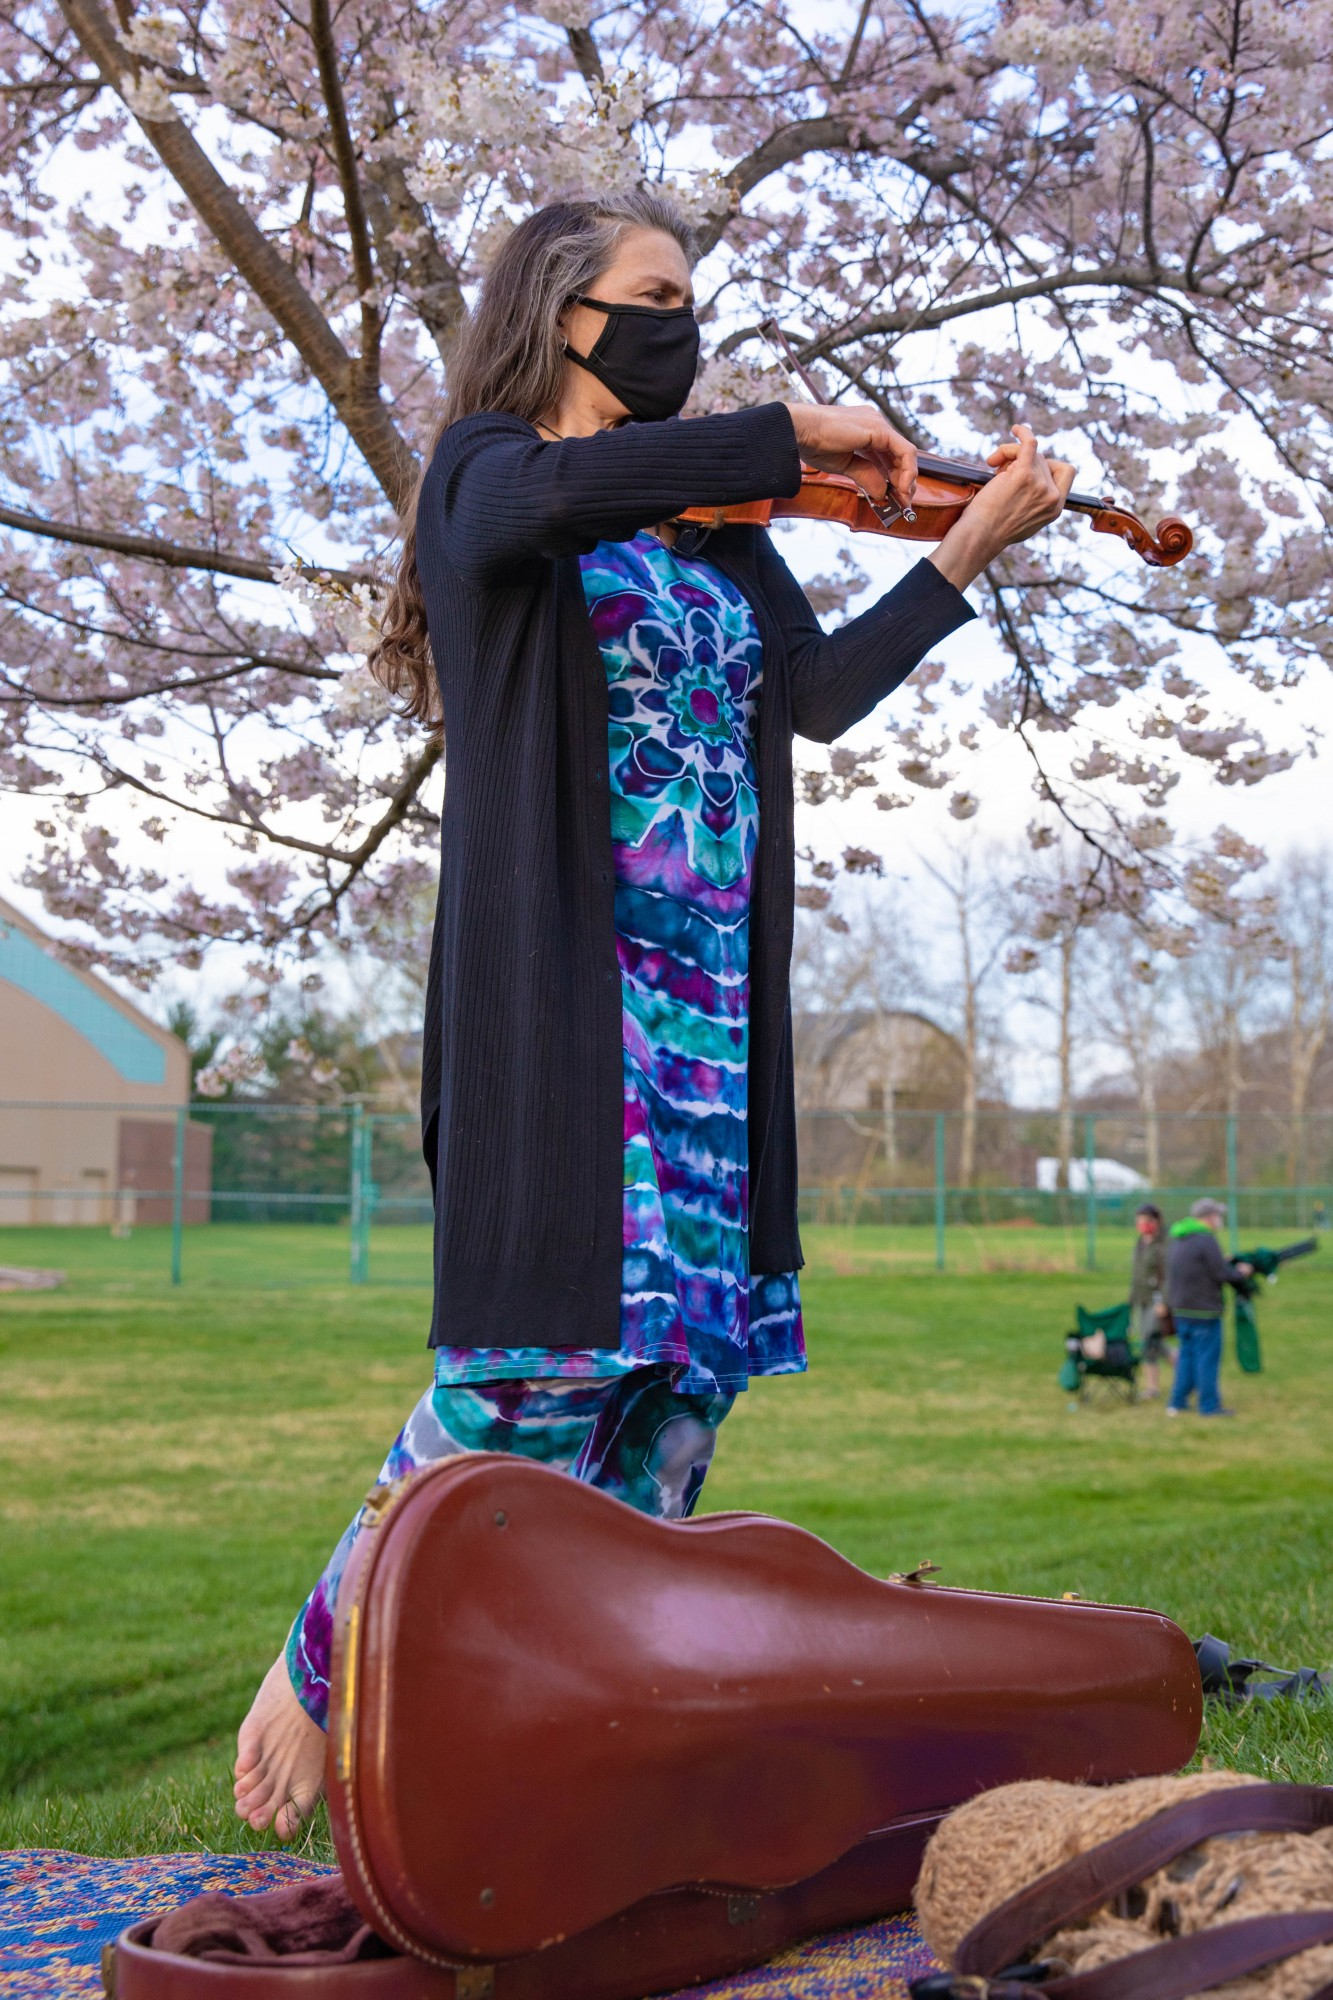 Karen Richards plays her violin between the rows of cherry blossom trees along the Hocking River as the sun begins to set on Tuesday, March 30, 2021.